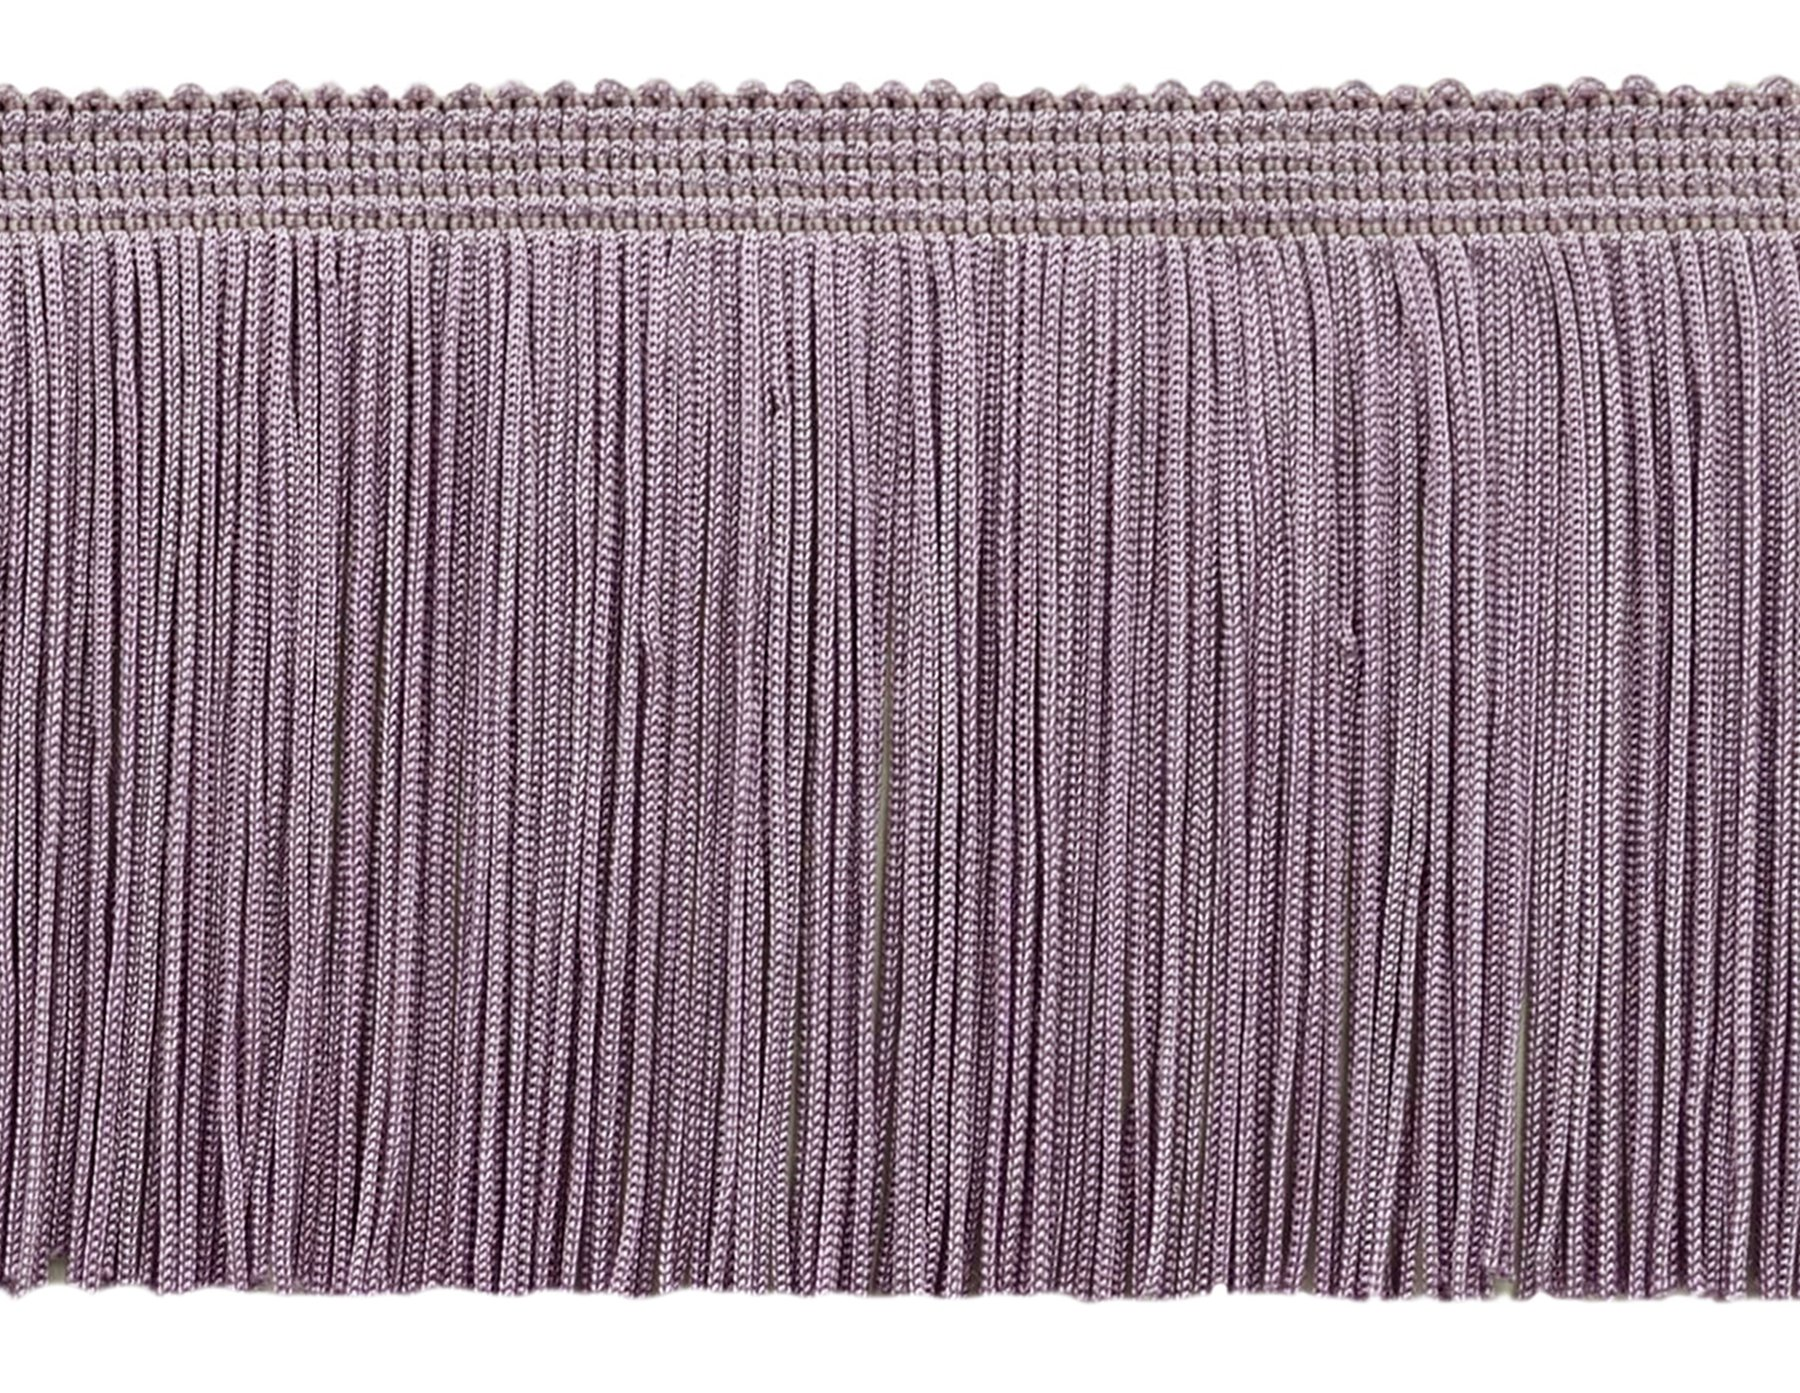 D/ÉCOPRO 11 Yard Value Pack of 2 Inch Chainette Fringe Trim 33 Feet // 10M Style# CF02 Color: Light Rose Pink 07